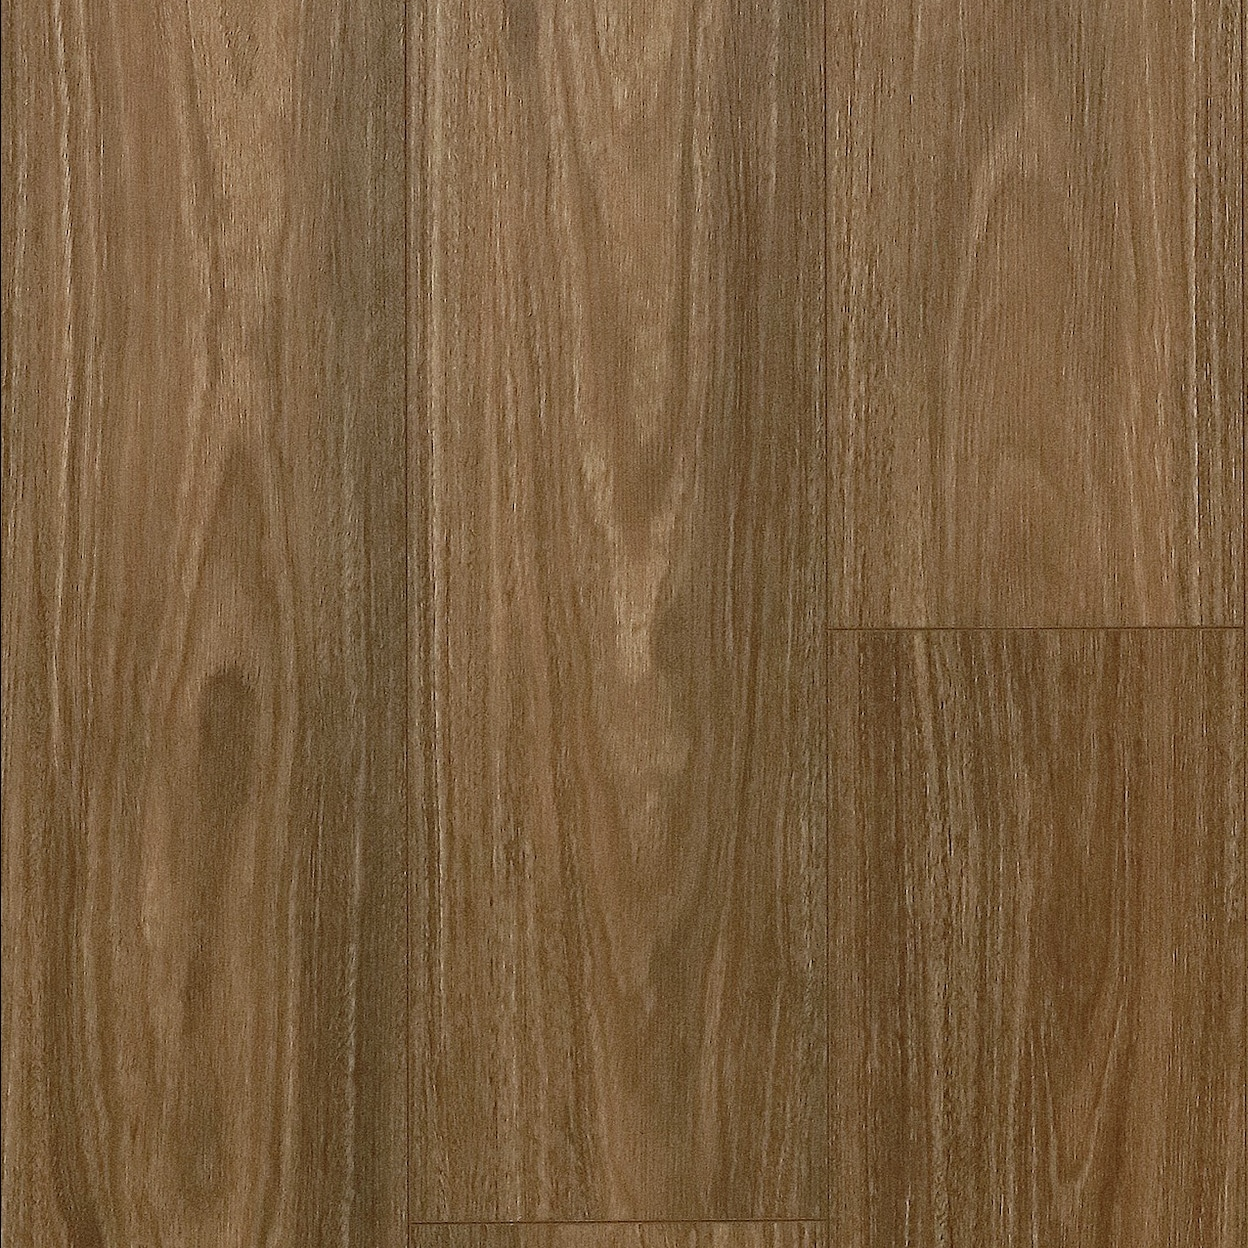 Topdeck Storm Luxury Hybrid Flooring Spotted Gum Select - The Flooring Guys